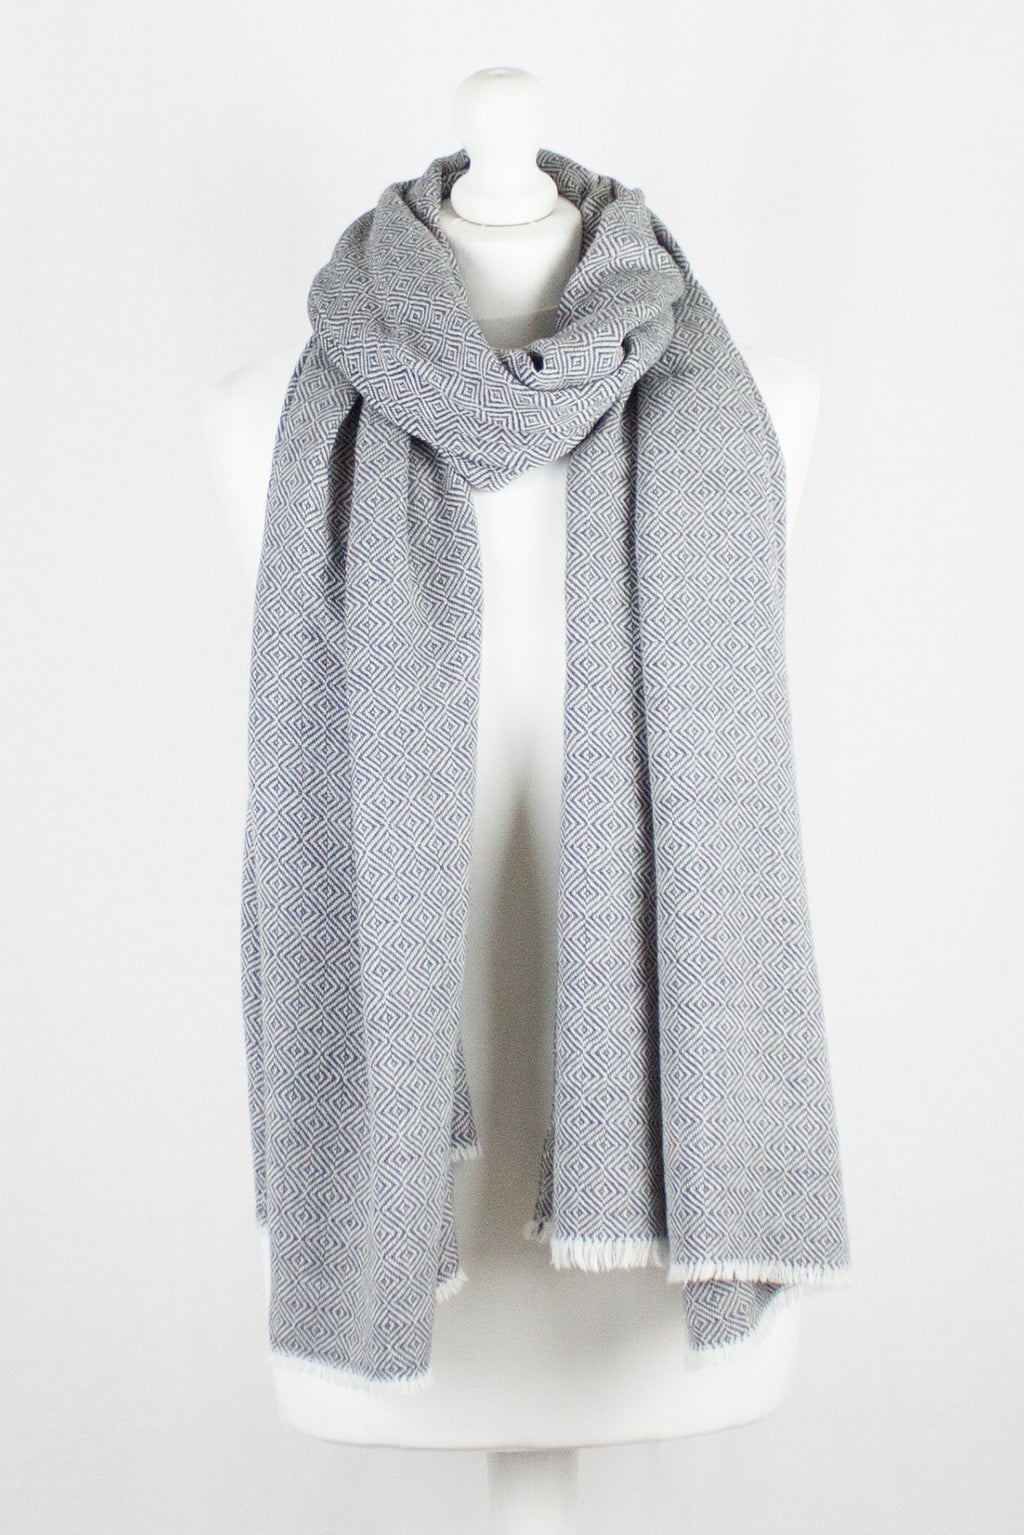 Alpine Merino Diamond Weave Two Tone Wool Scarf - Grey